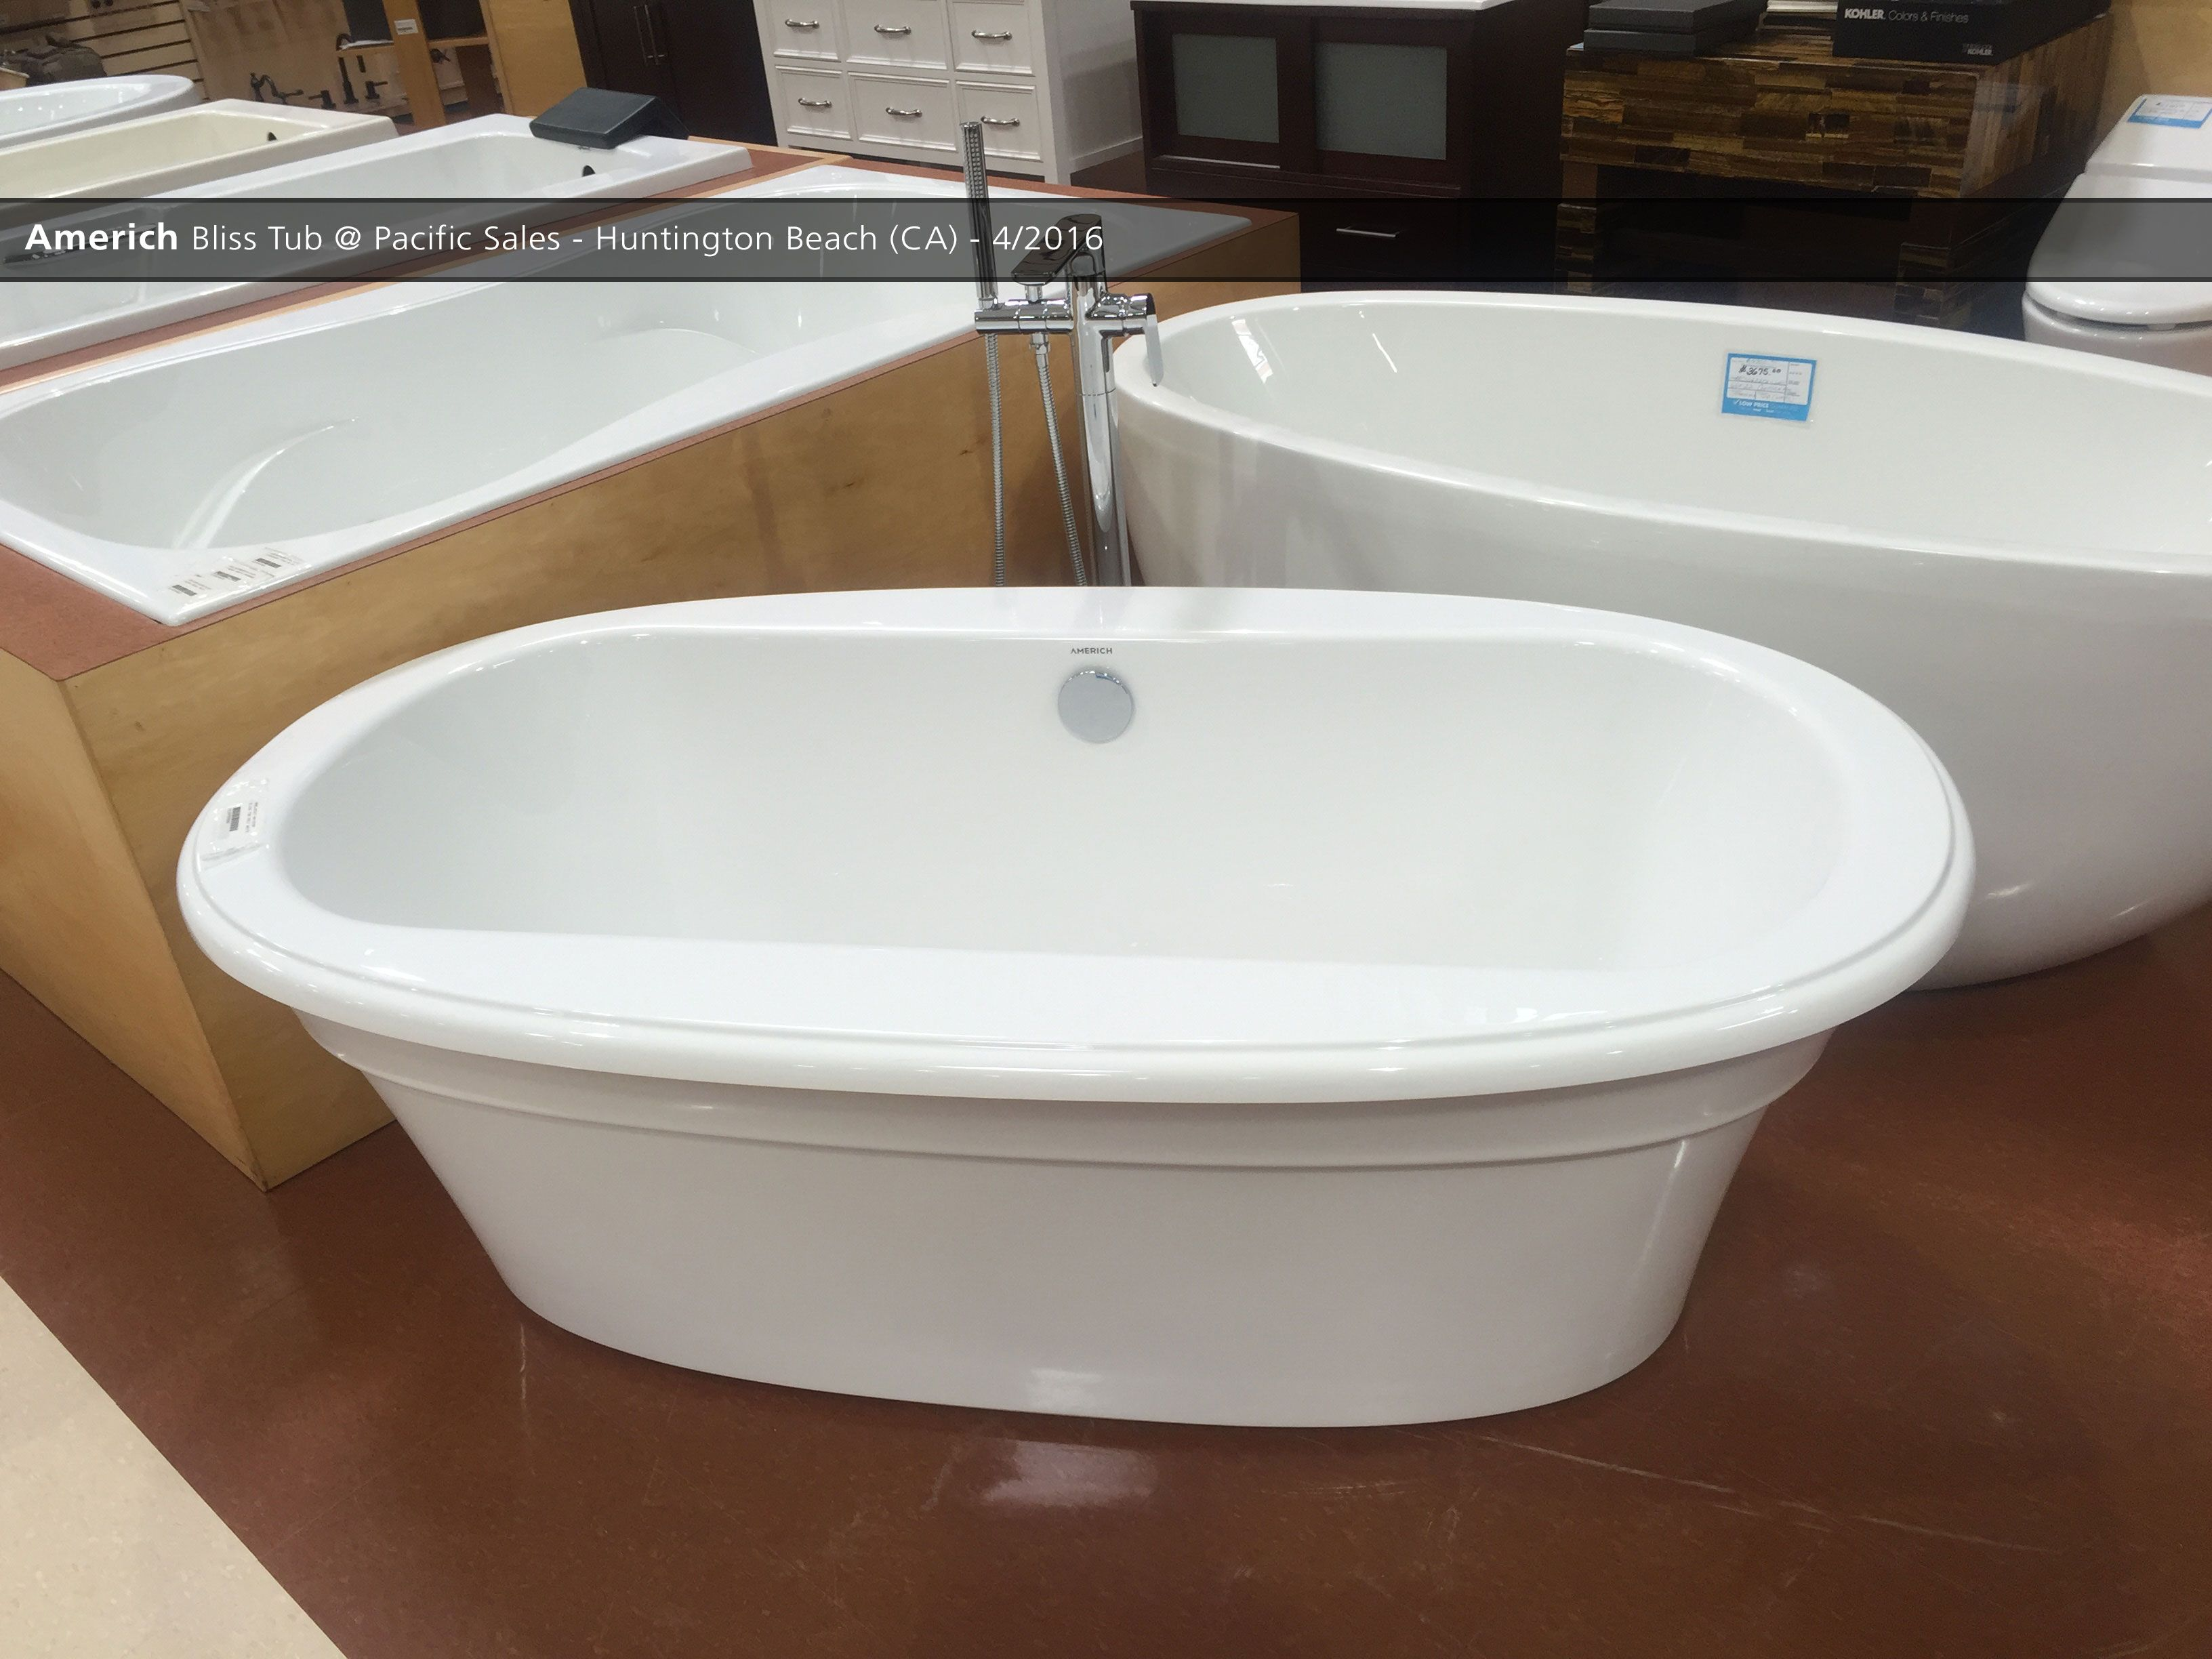 Bathroom Fixtures Huntington Beach americh bliss tub @ pacific-sales-huntington-beach (ca) - 4/2016